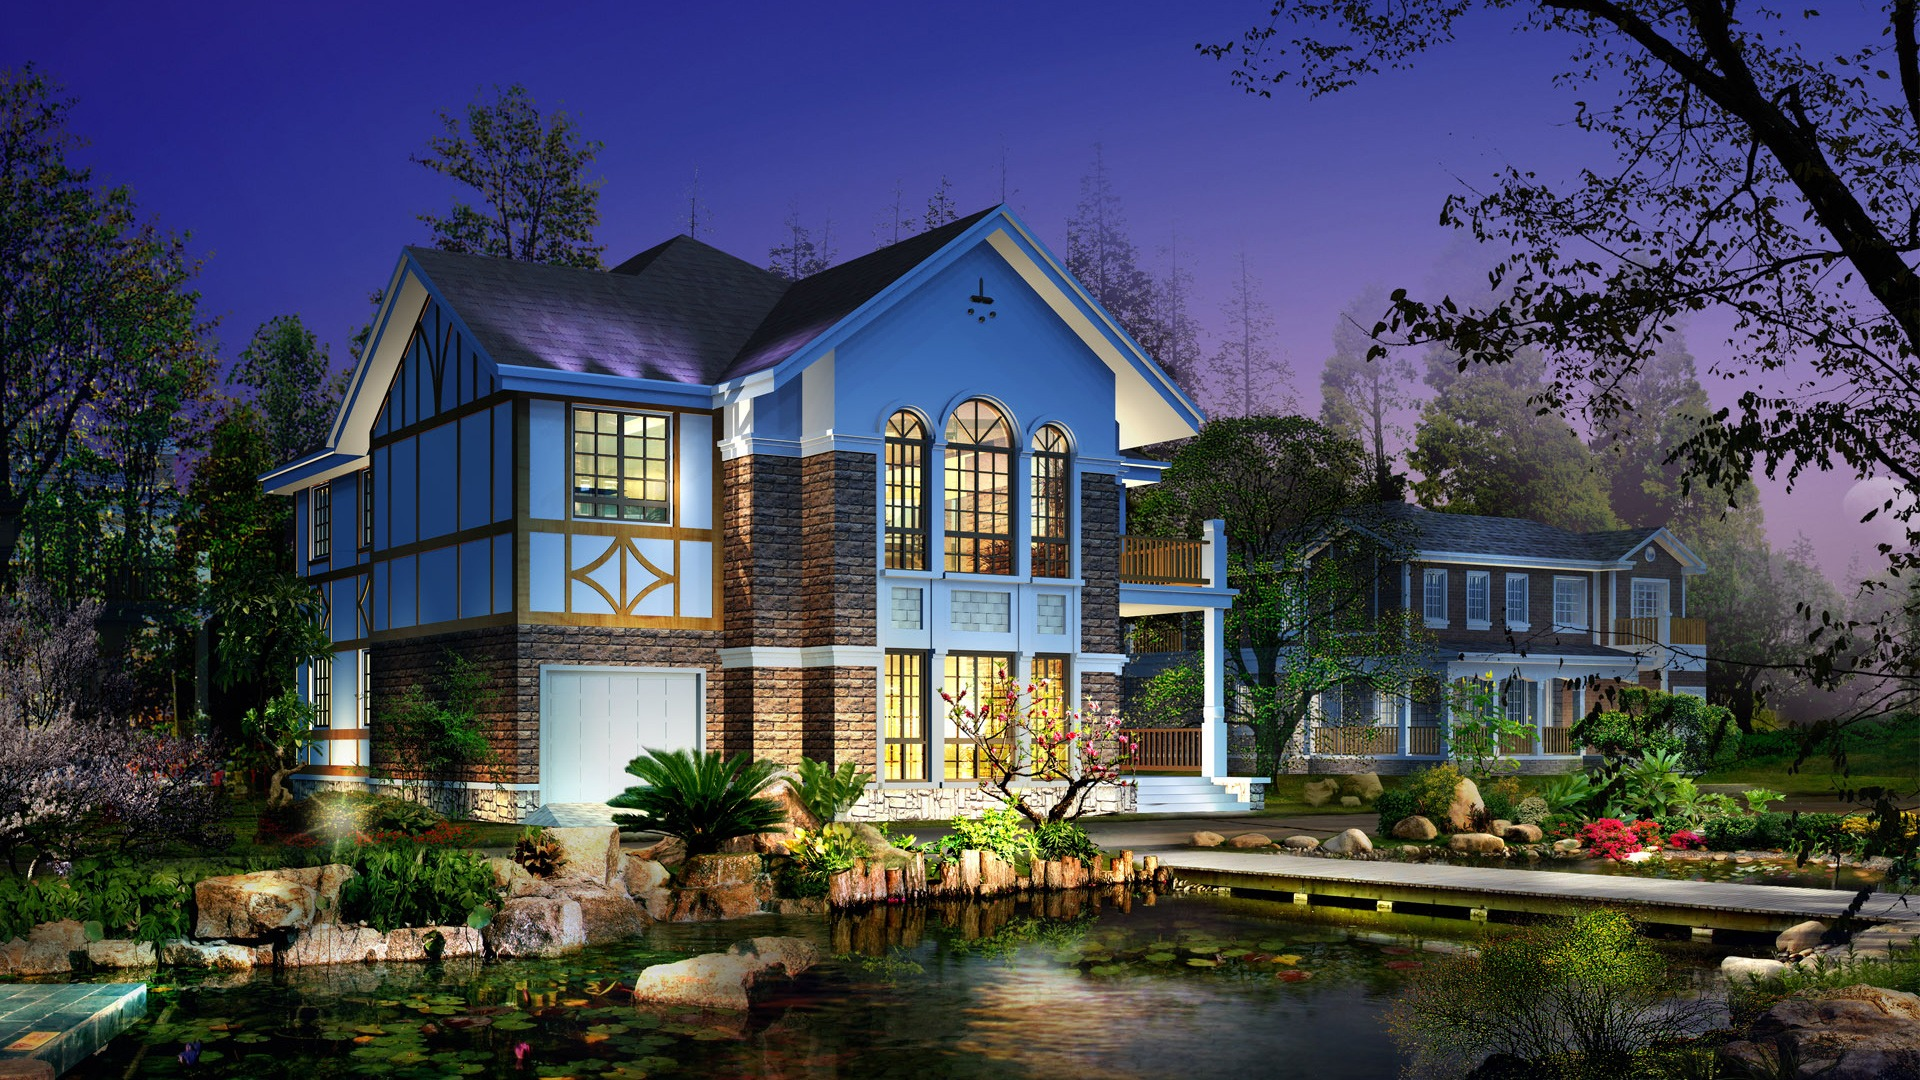 hd wallpaper of home architecture - talentneeds -